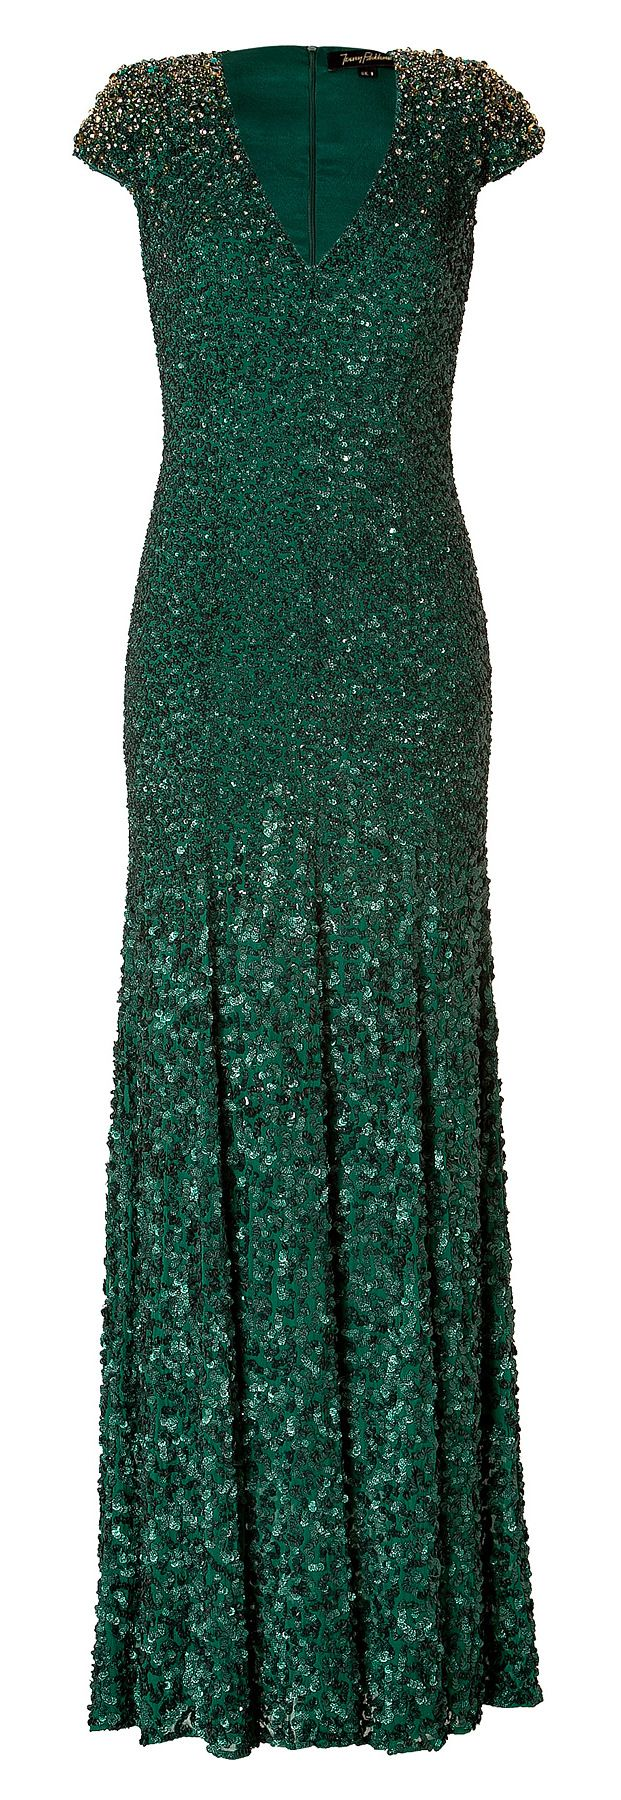 Jenny Packham Emerald Green Silk Sequined Gown